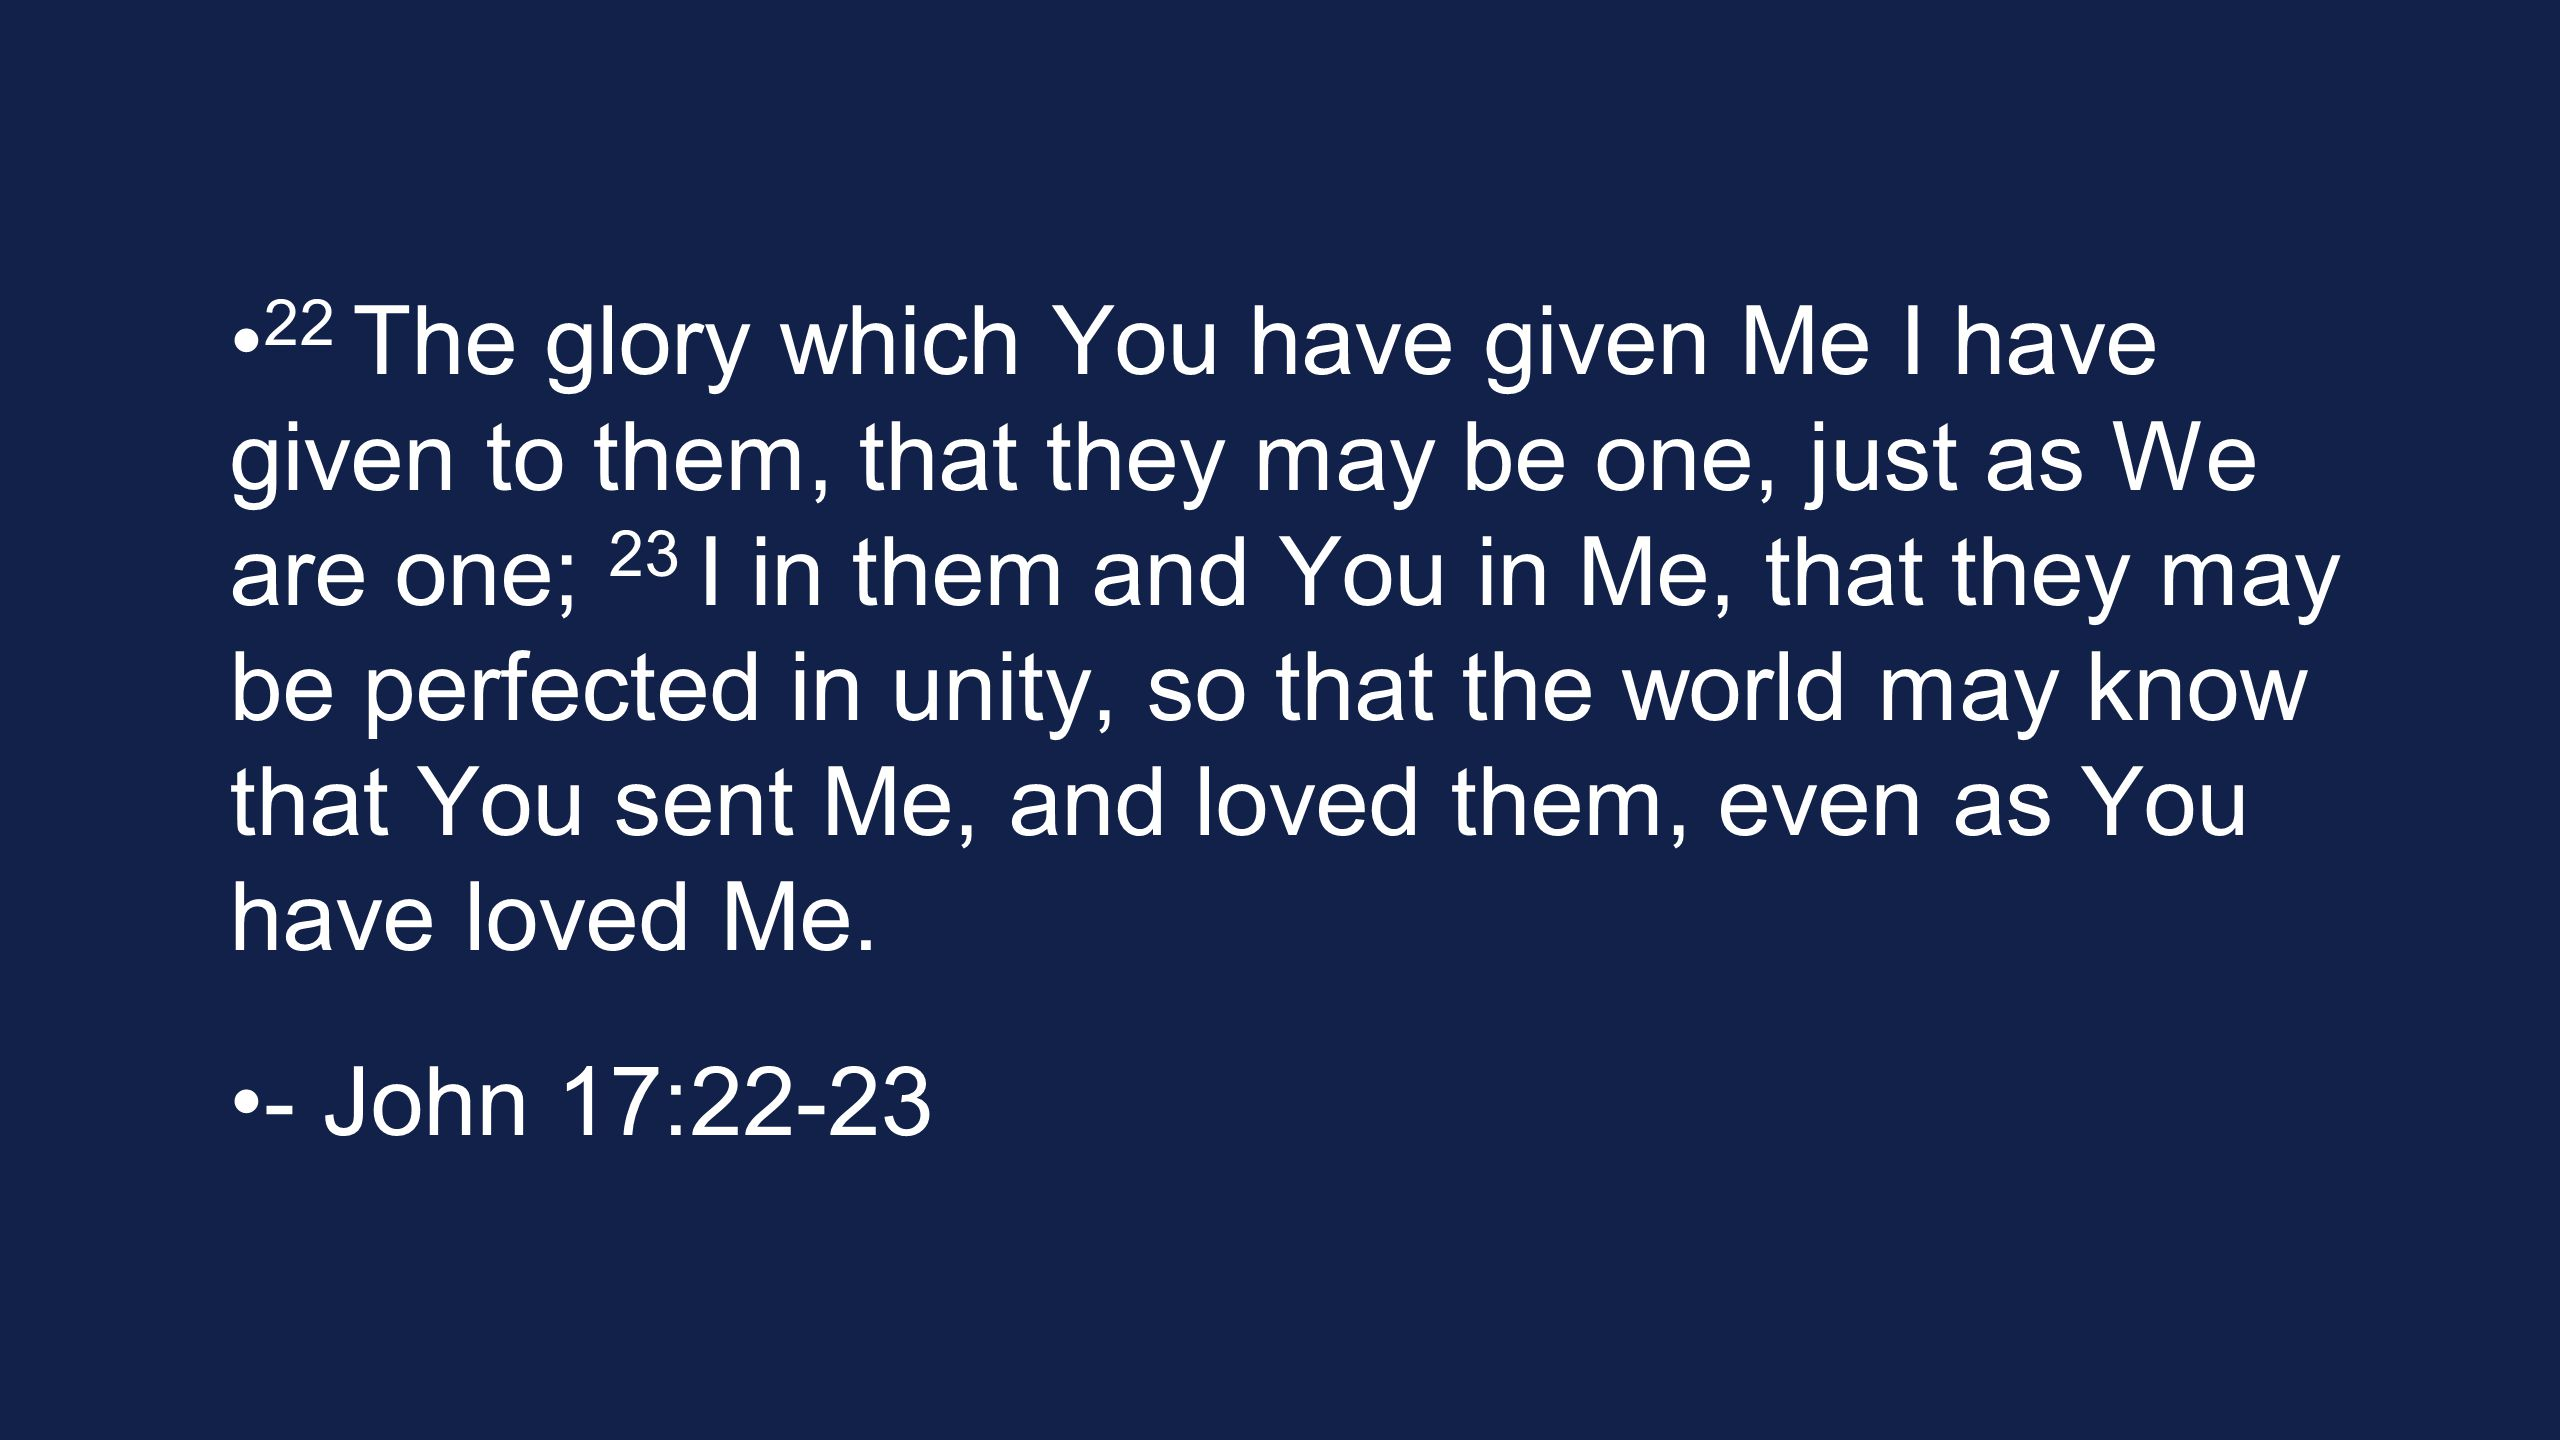 22 The glory which You have given Me I have given to them, that they may be one, just as We are one; 23 I in them and You in Me, that they may be perfected in unity, so that the world may know that You sent Me, and loved them, even as You have loved Me.